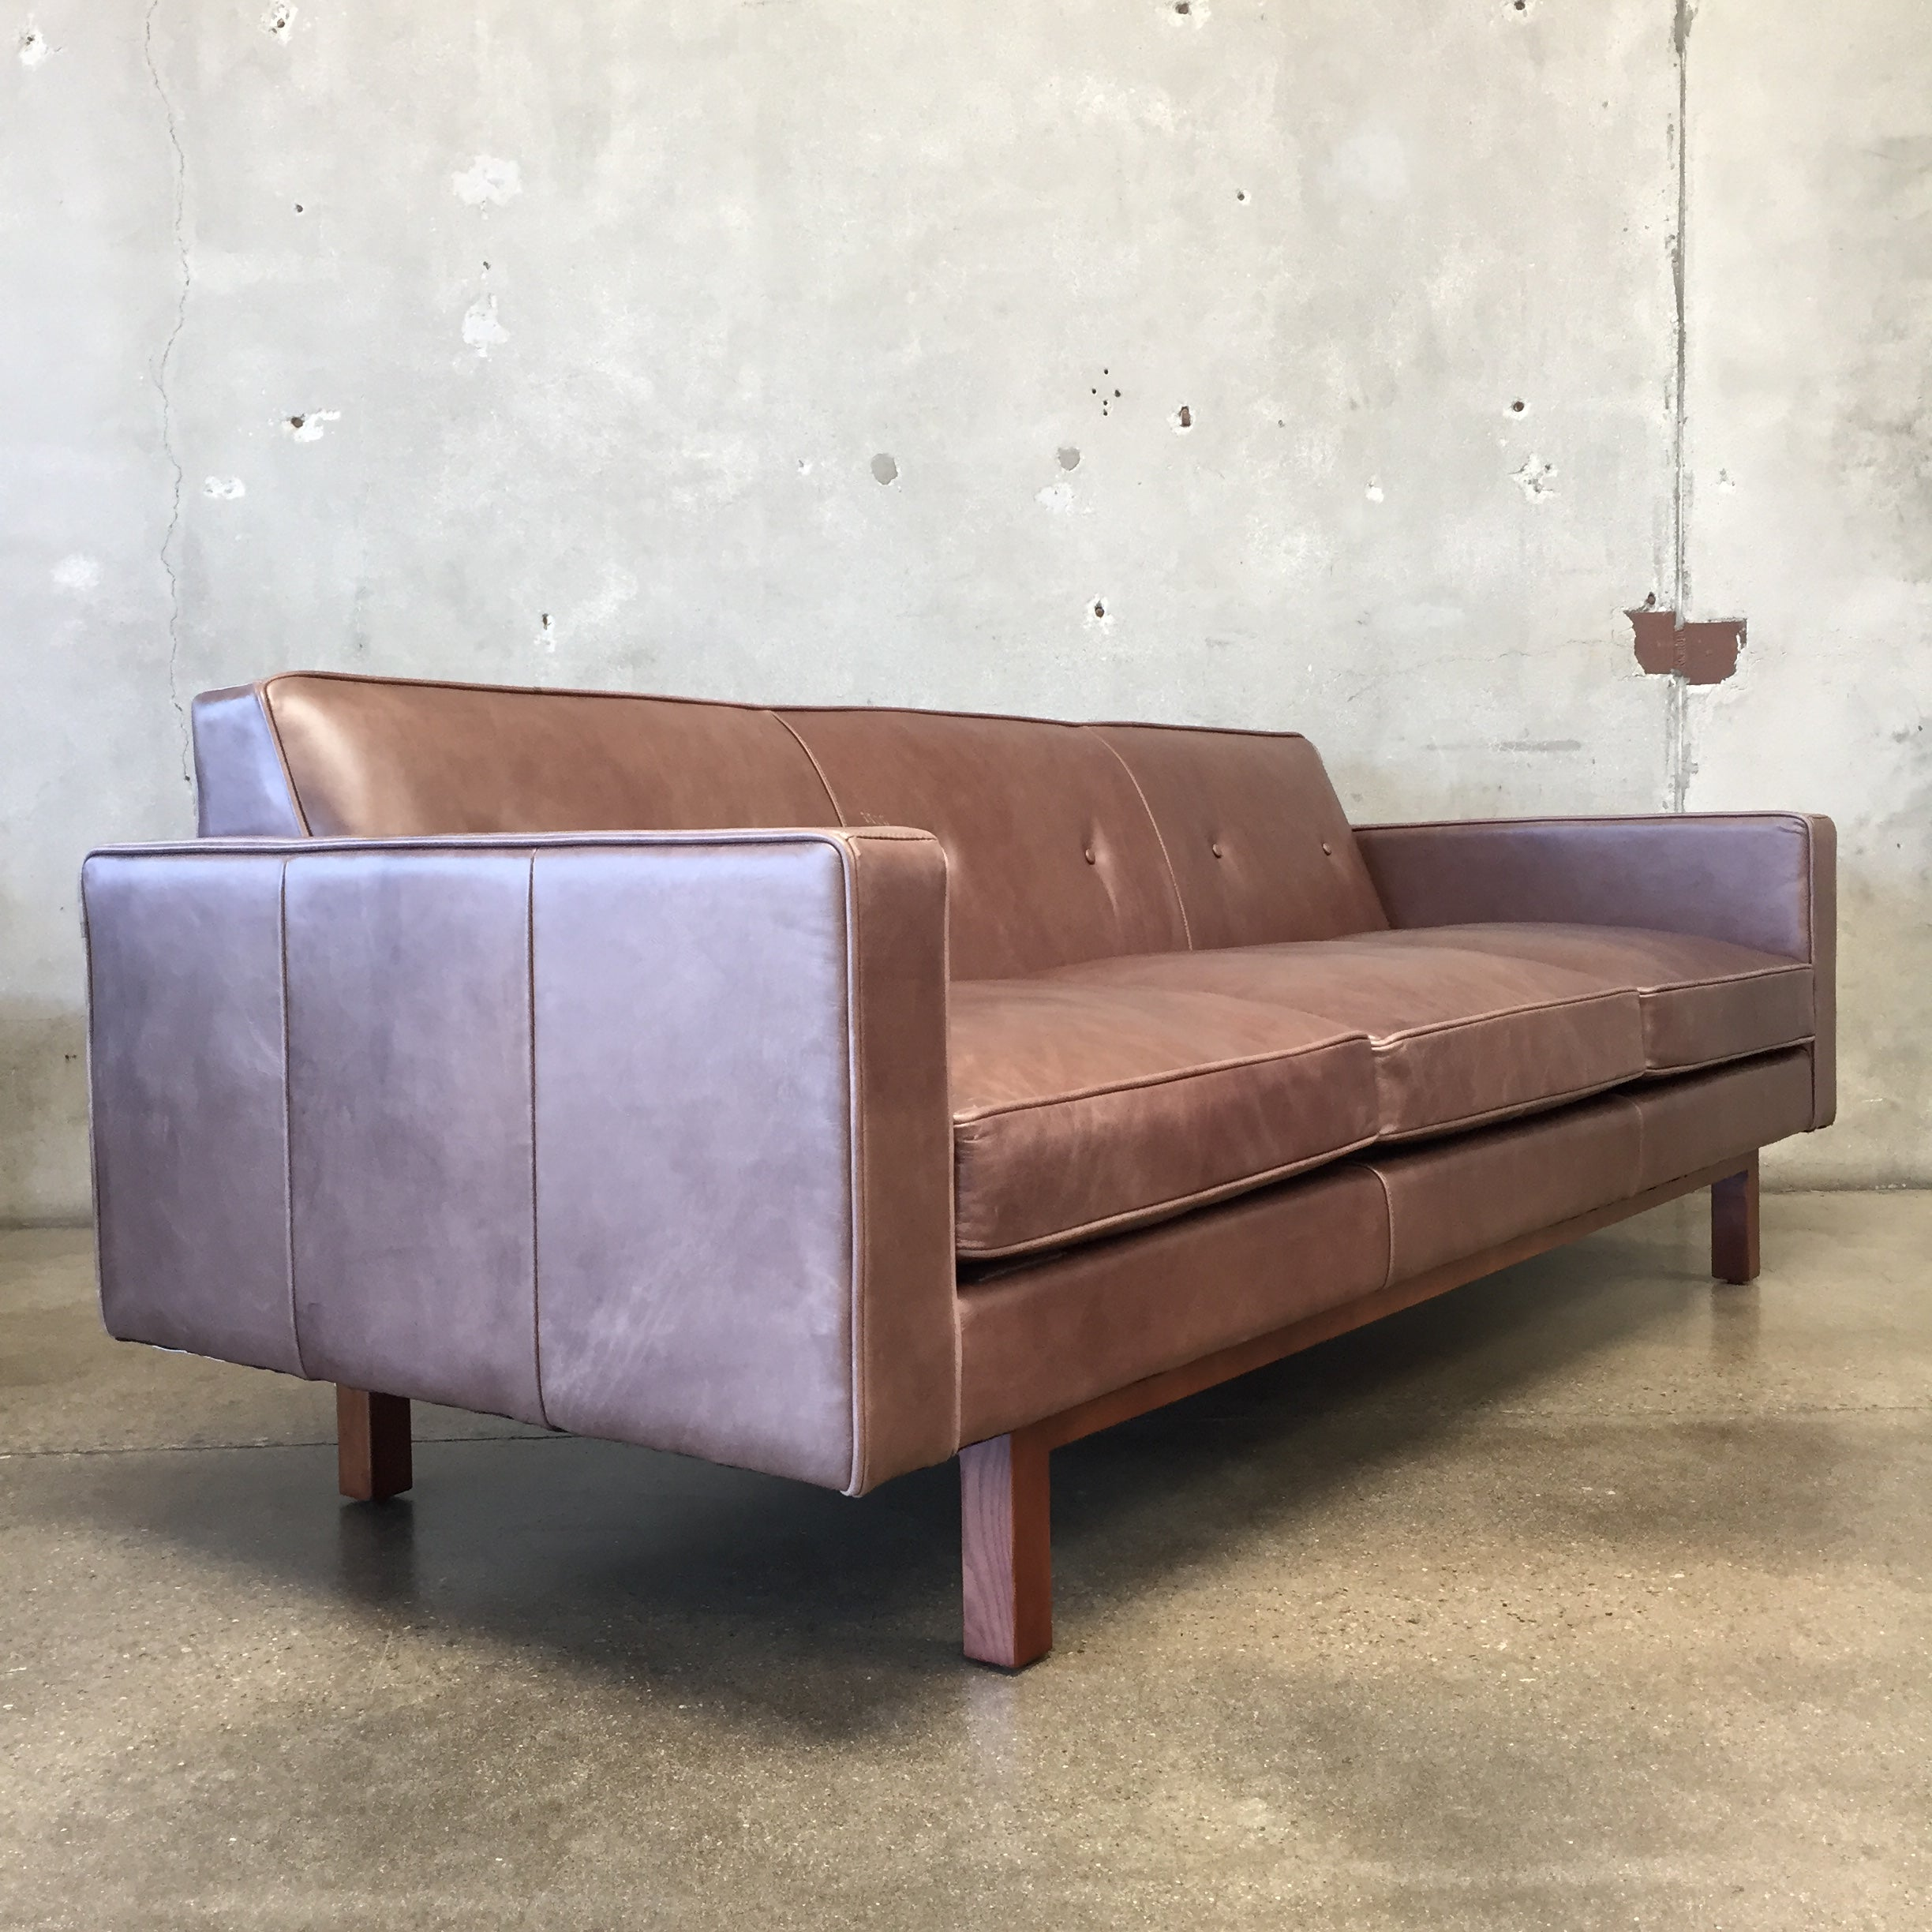 Strange Embassy Leather Sofa By Gus Modern Ibusinesslaw Wood Chair Design Ideas Ibusinesslaworg